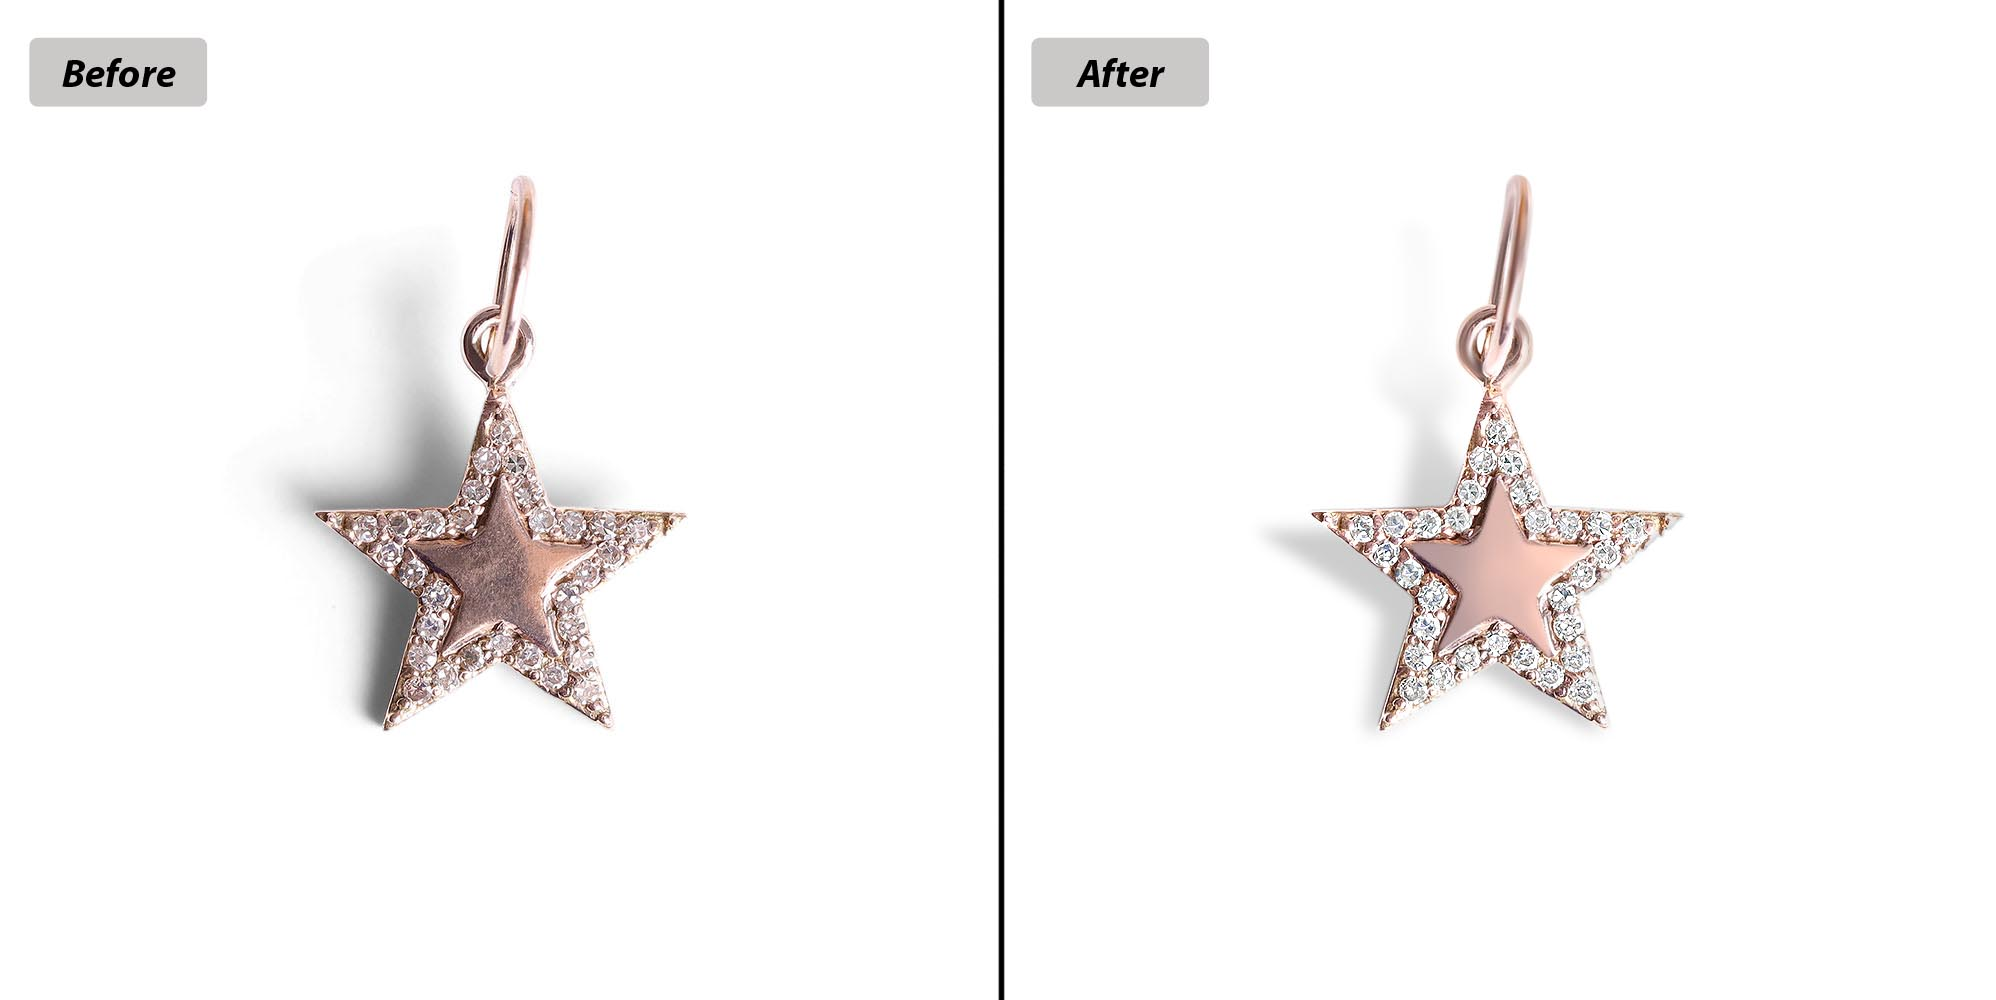 Clipping Charm_Jewellery retouch 0106